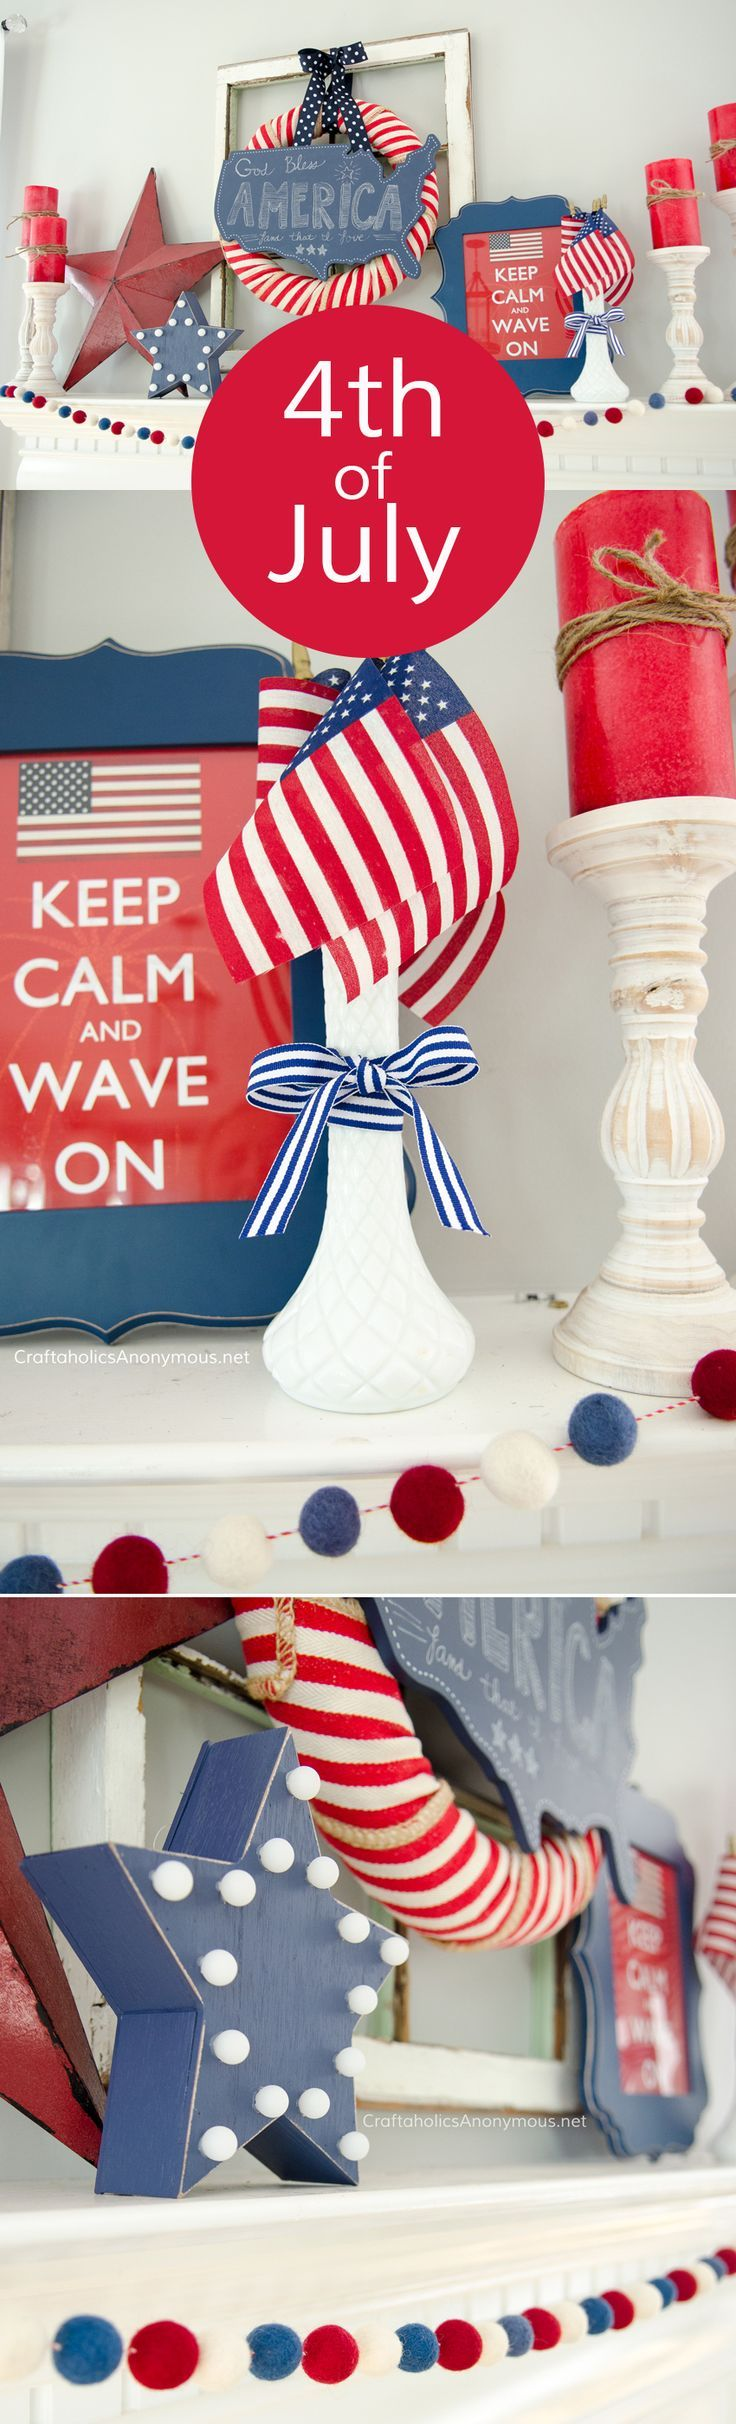 We the Craftaholics of crafting america, think you need this idea in your home this 4th! Who doesn't want this wreath?